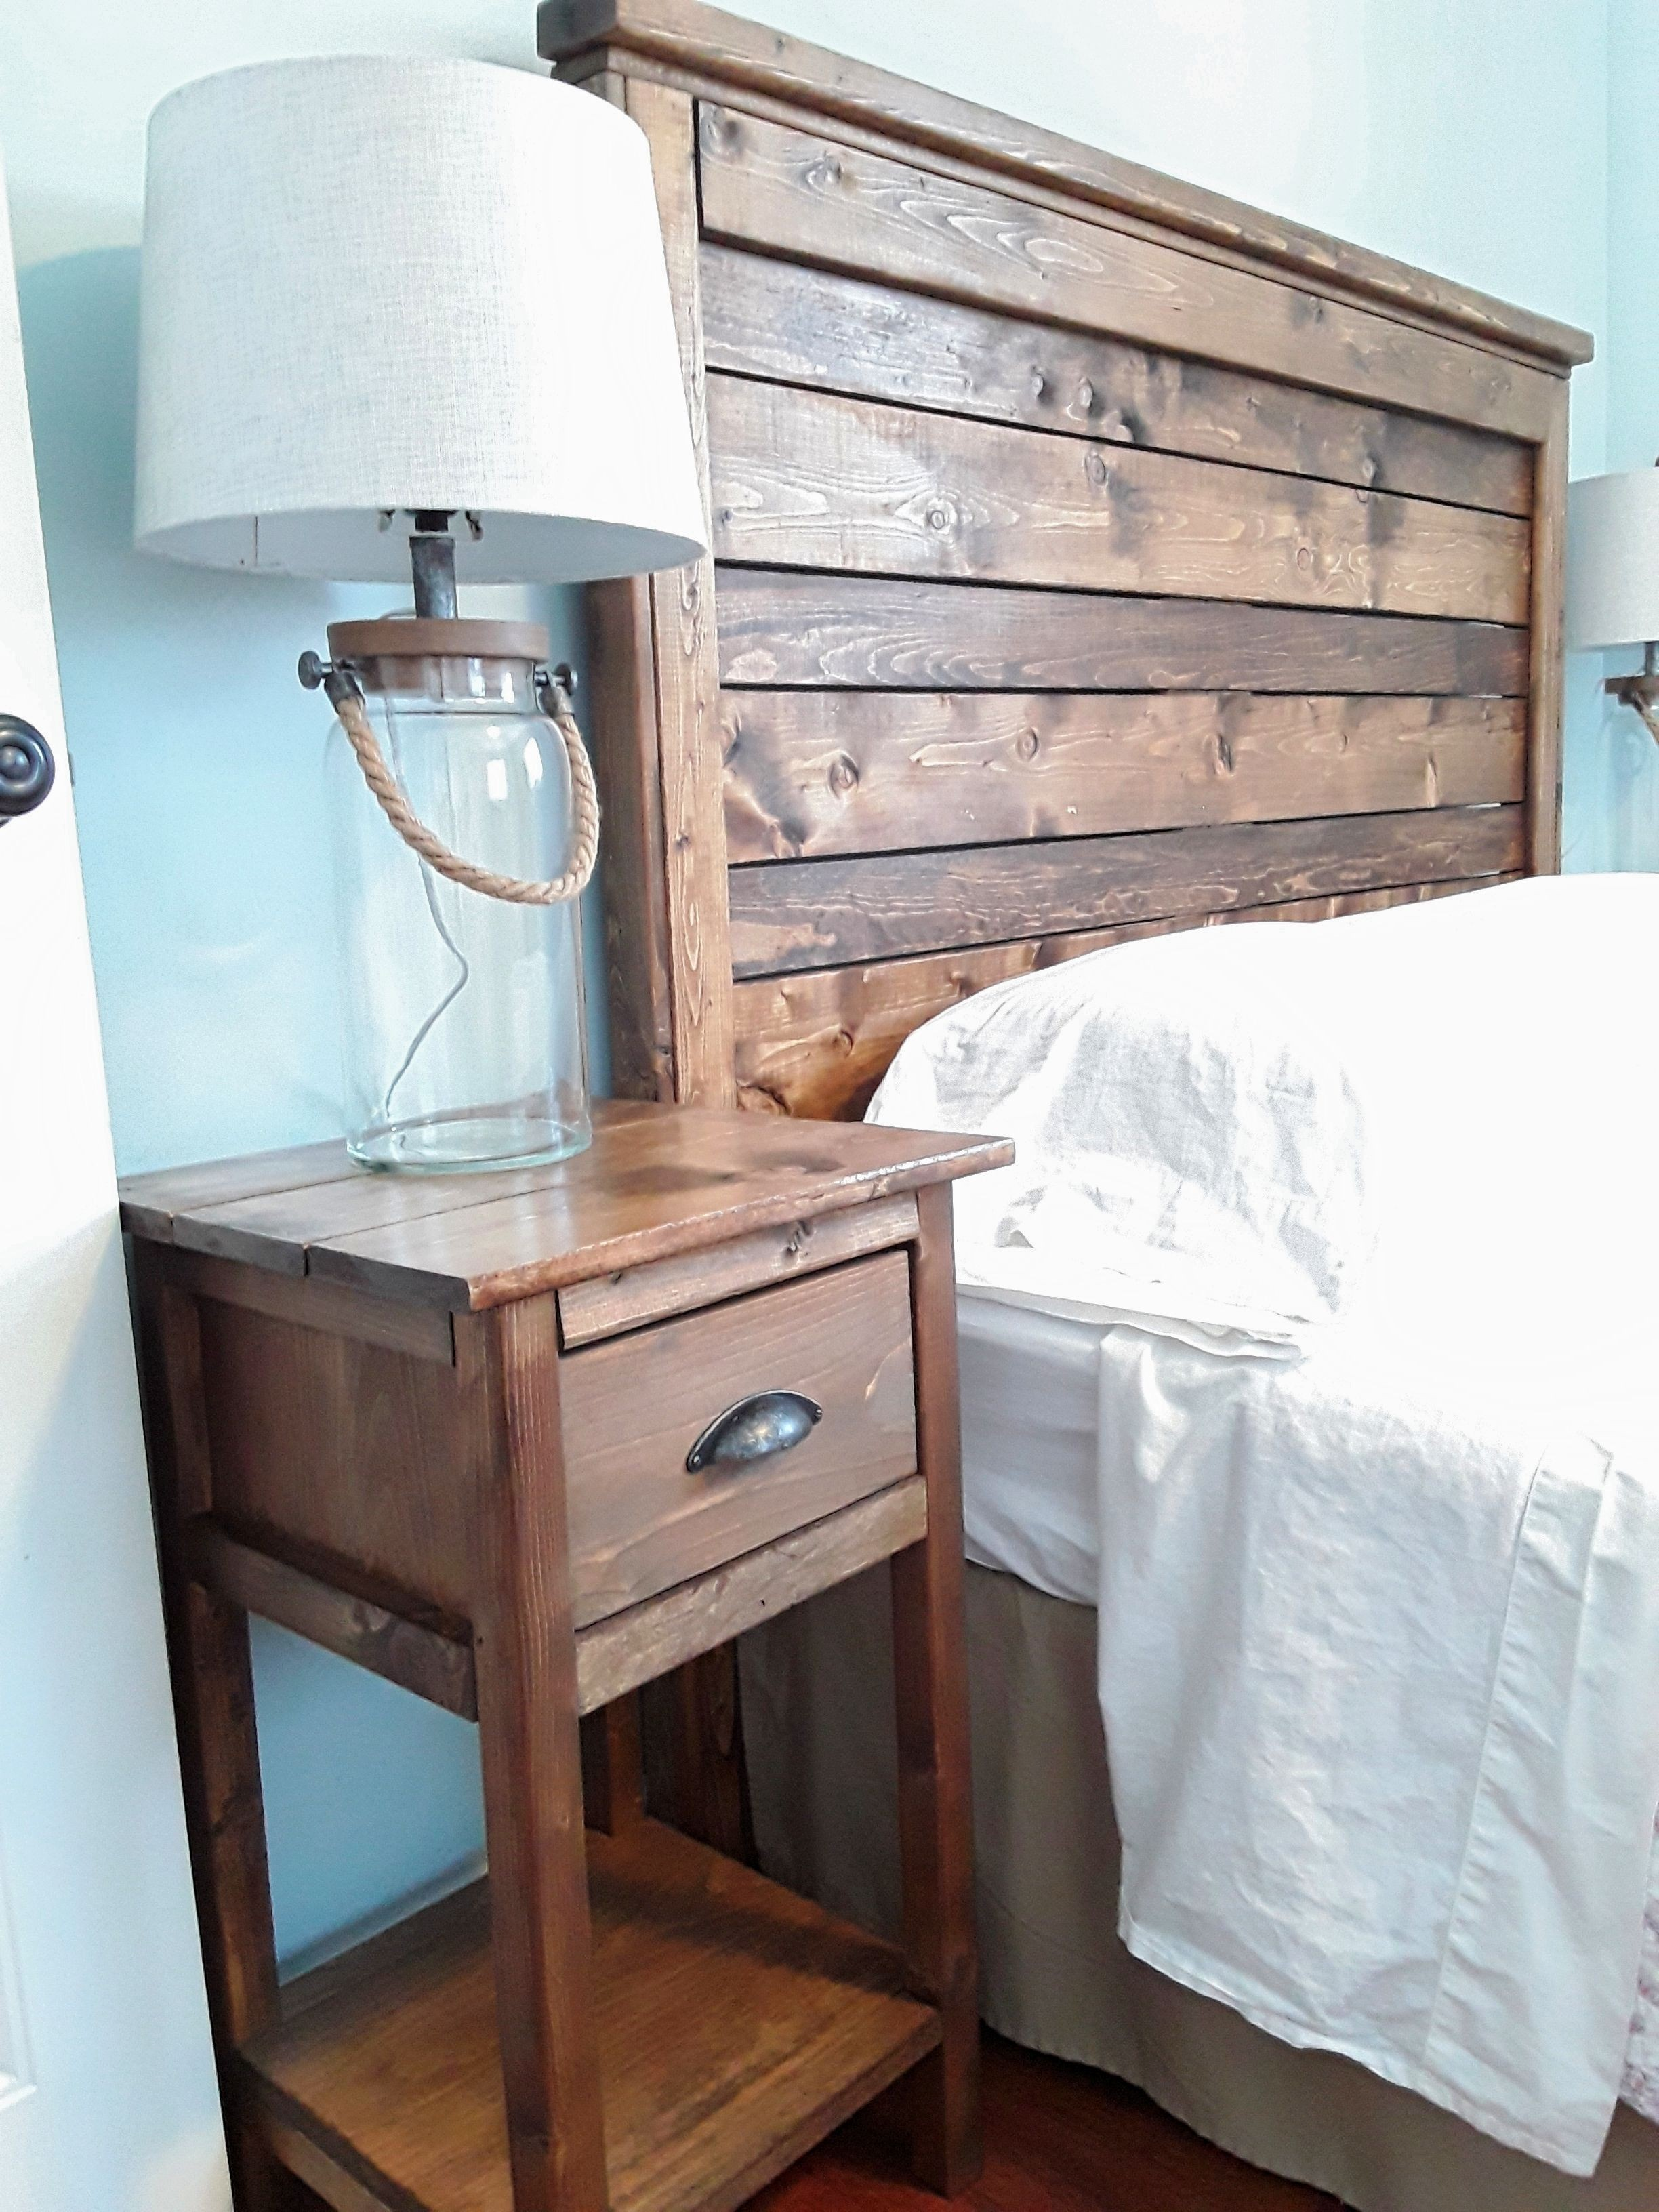 reclaimed wood headboard diy inspirational rustic accent table distressed tables patio furniture with umbrella half moon glass perspex coffee gas bbq grills gallerie pier one